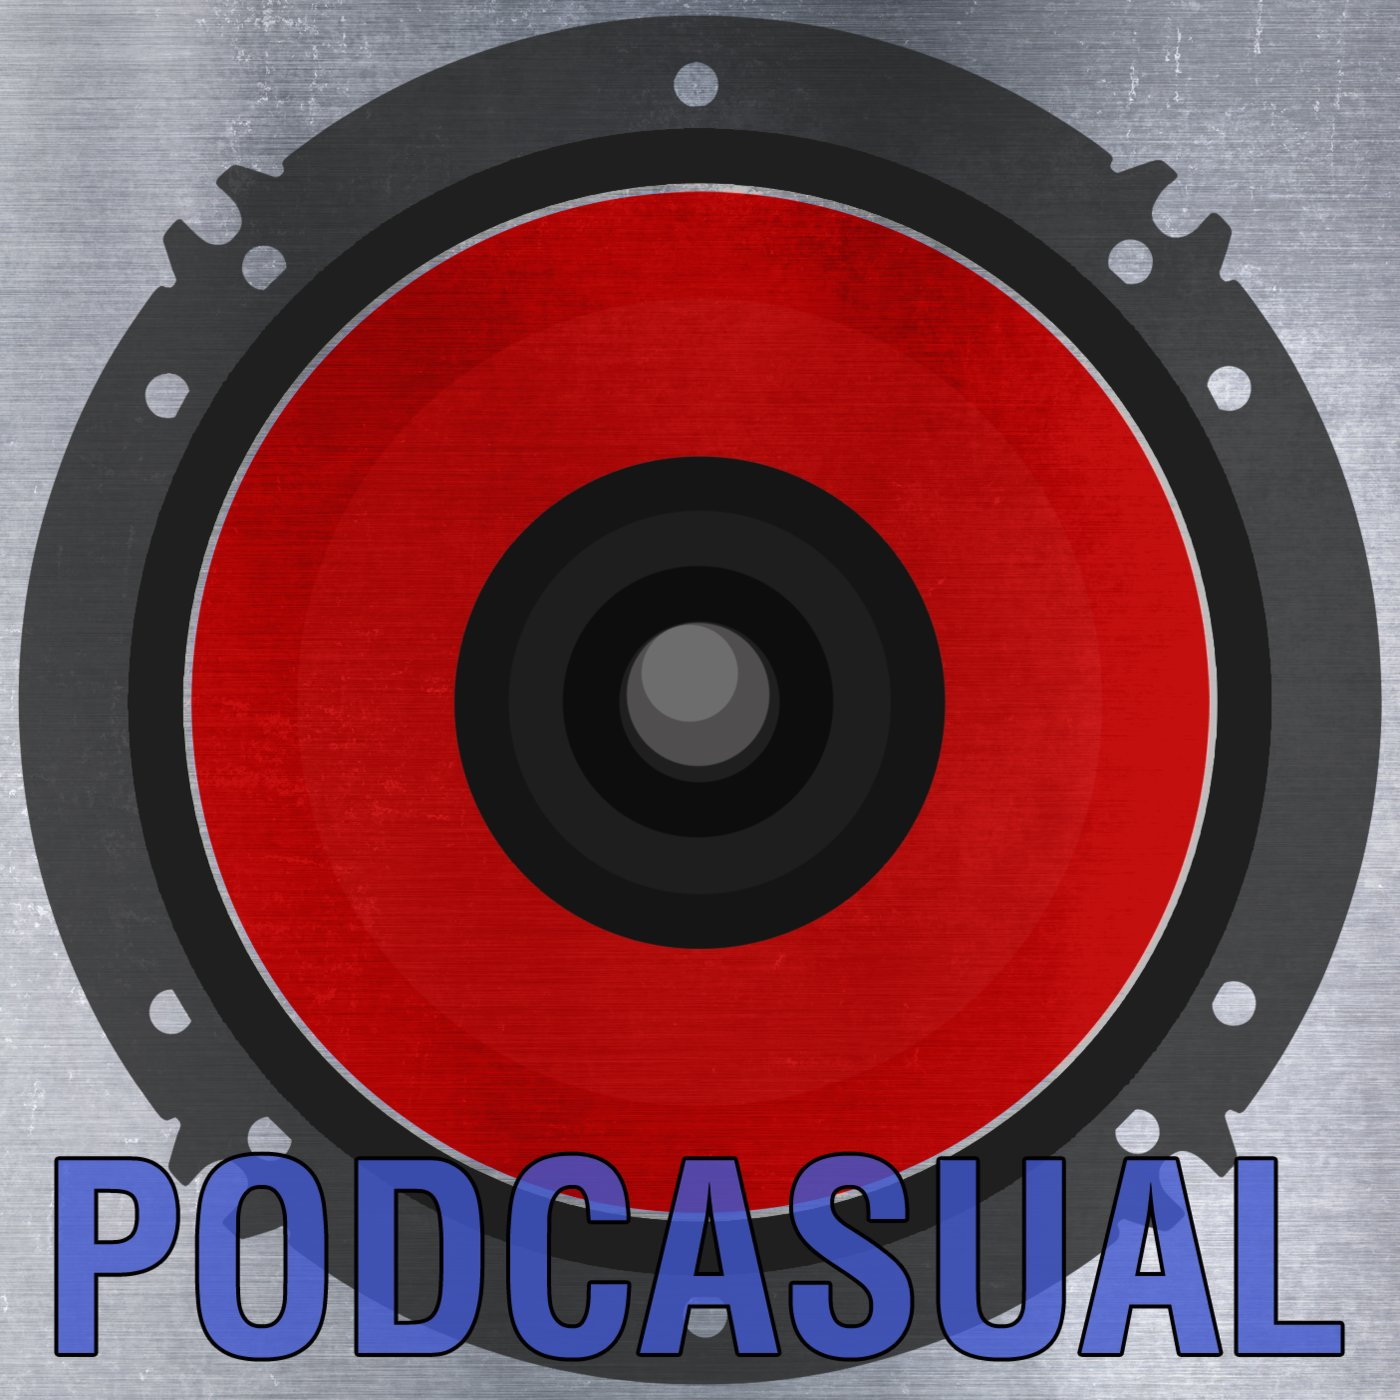 <![CDATA[Podcasual]]>